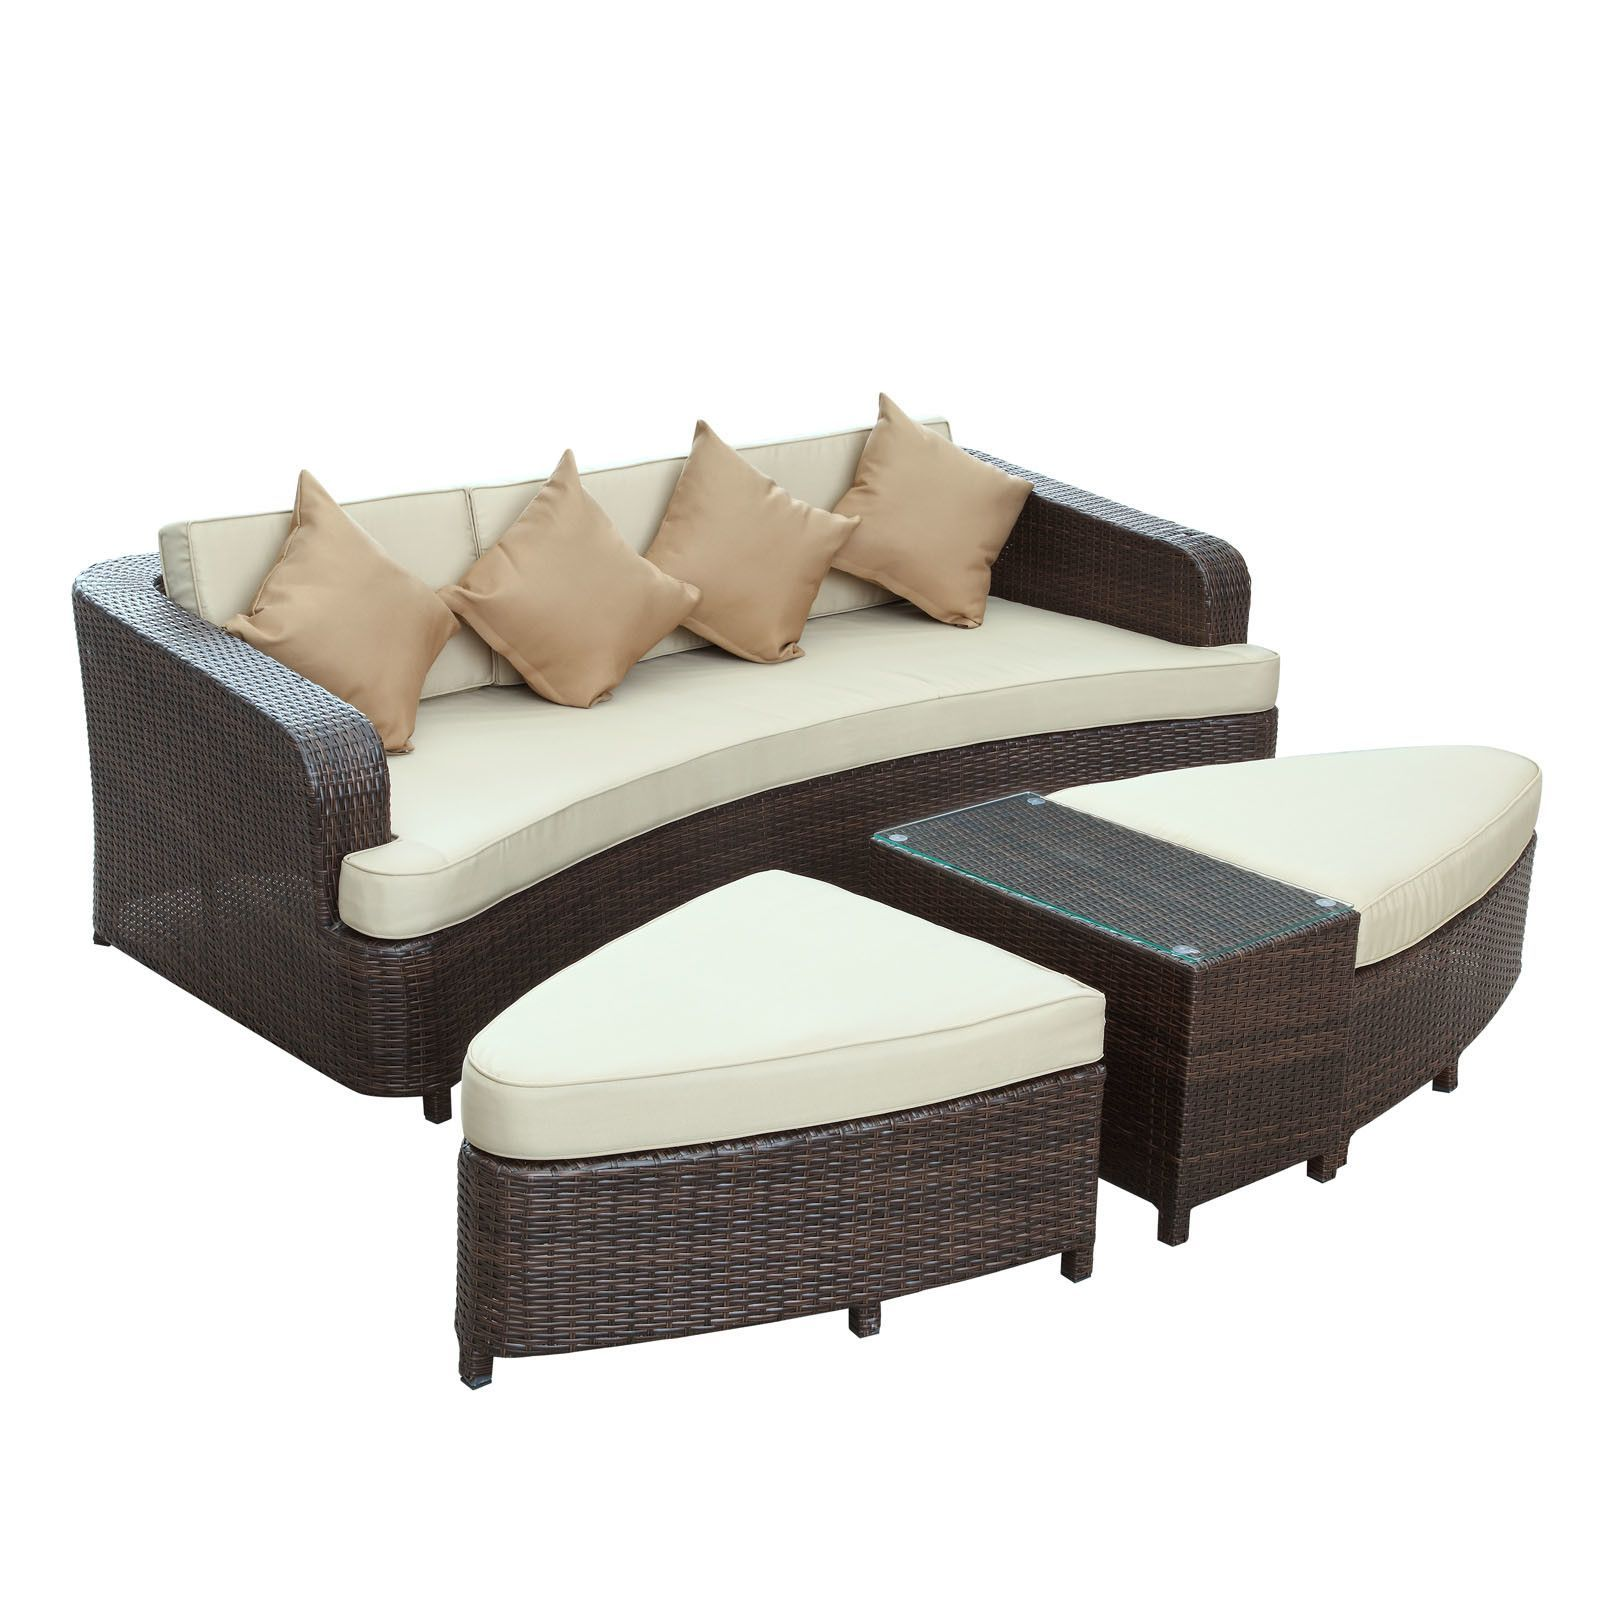 Monterey 4 Piece Deep Seating Group with Cushions I